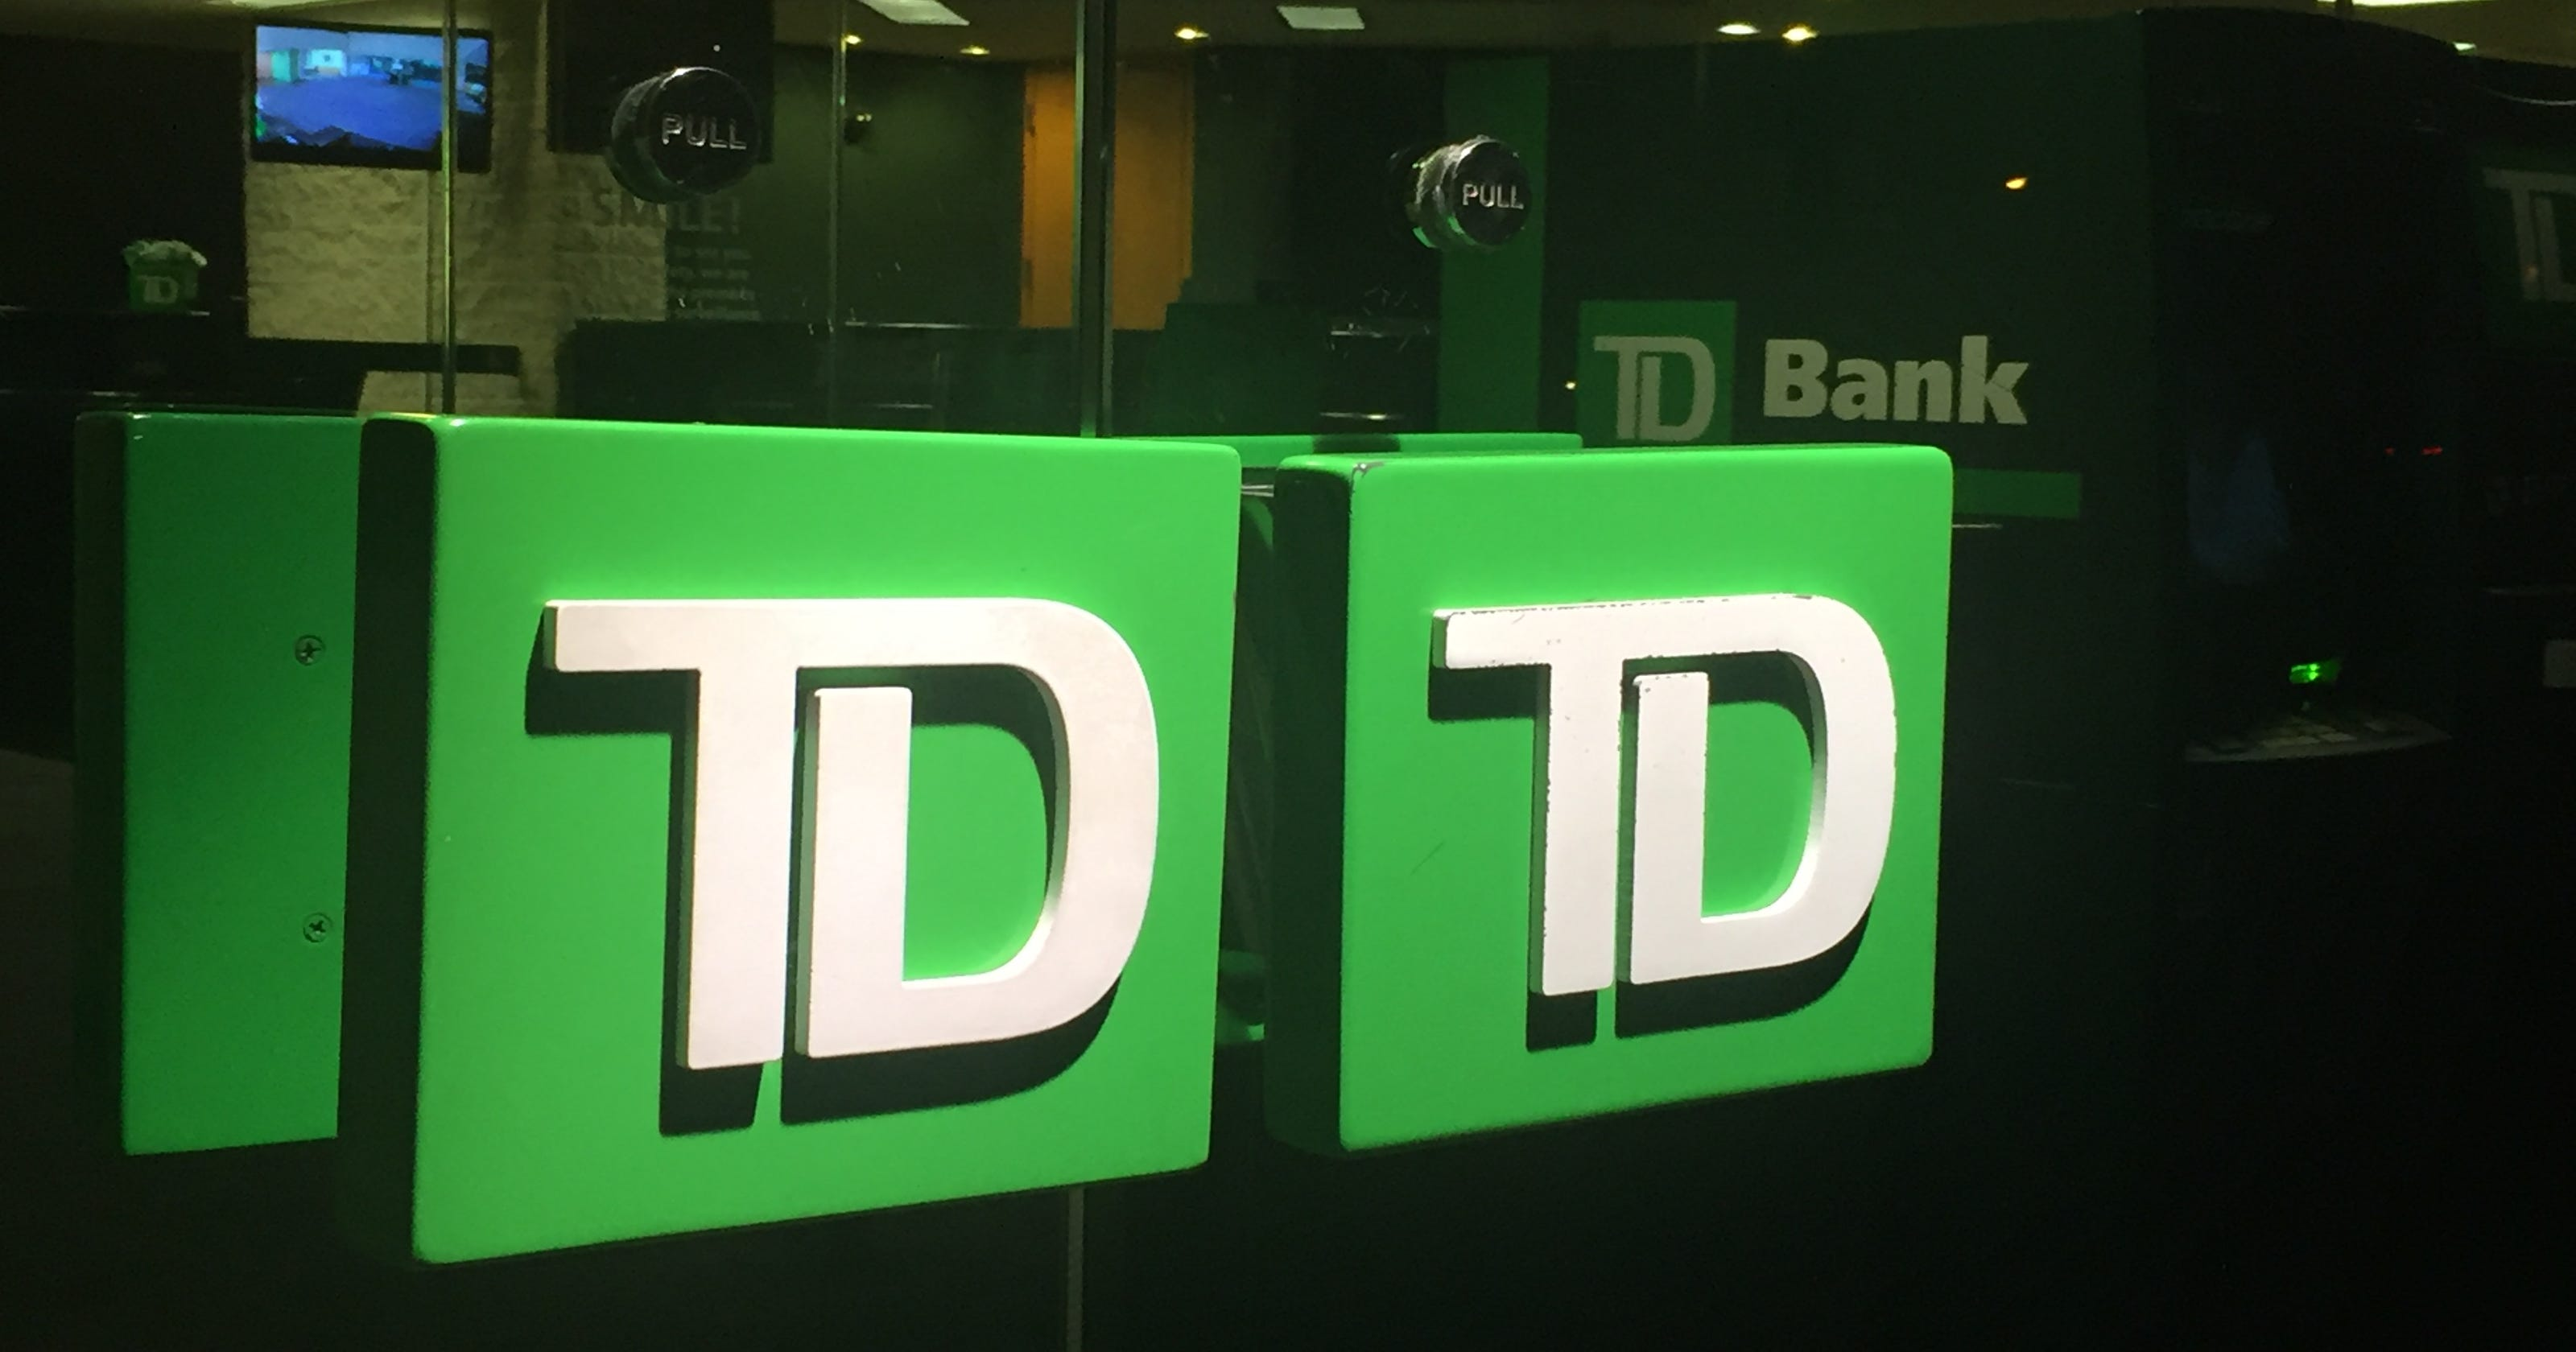 TD Bank teller charged with bank fraud, aggravated identity theft